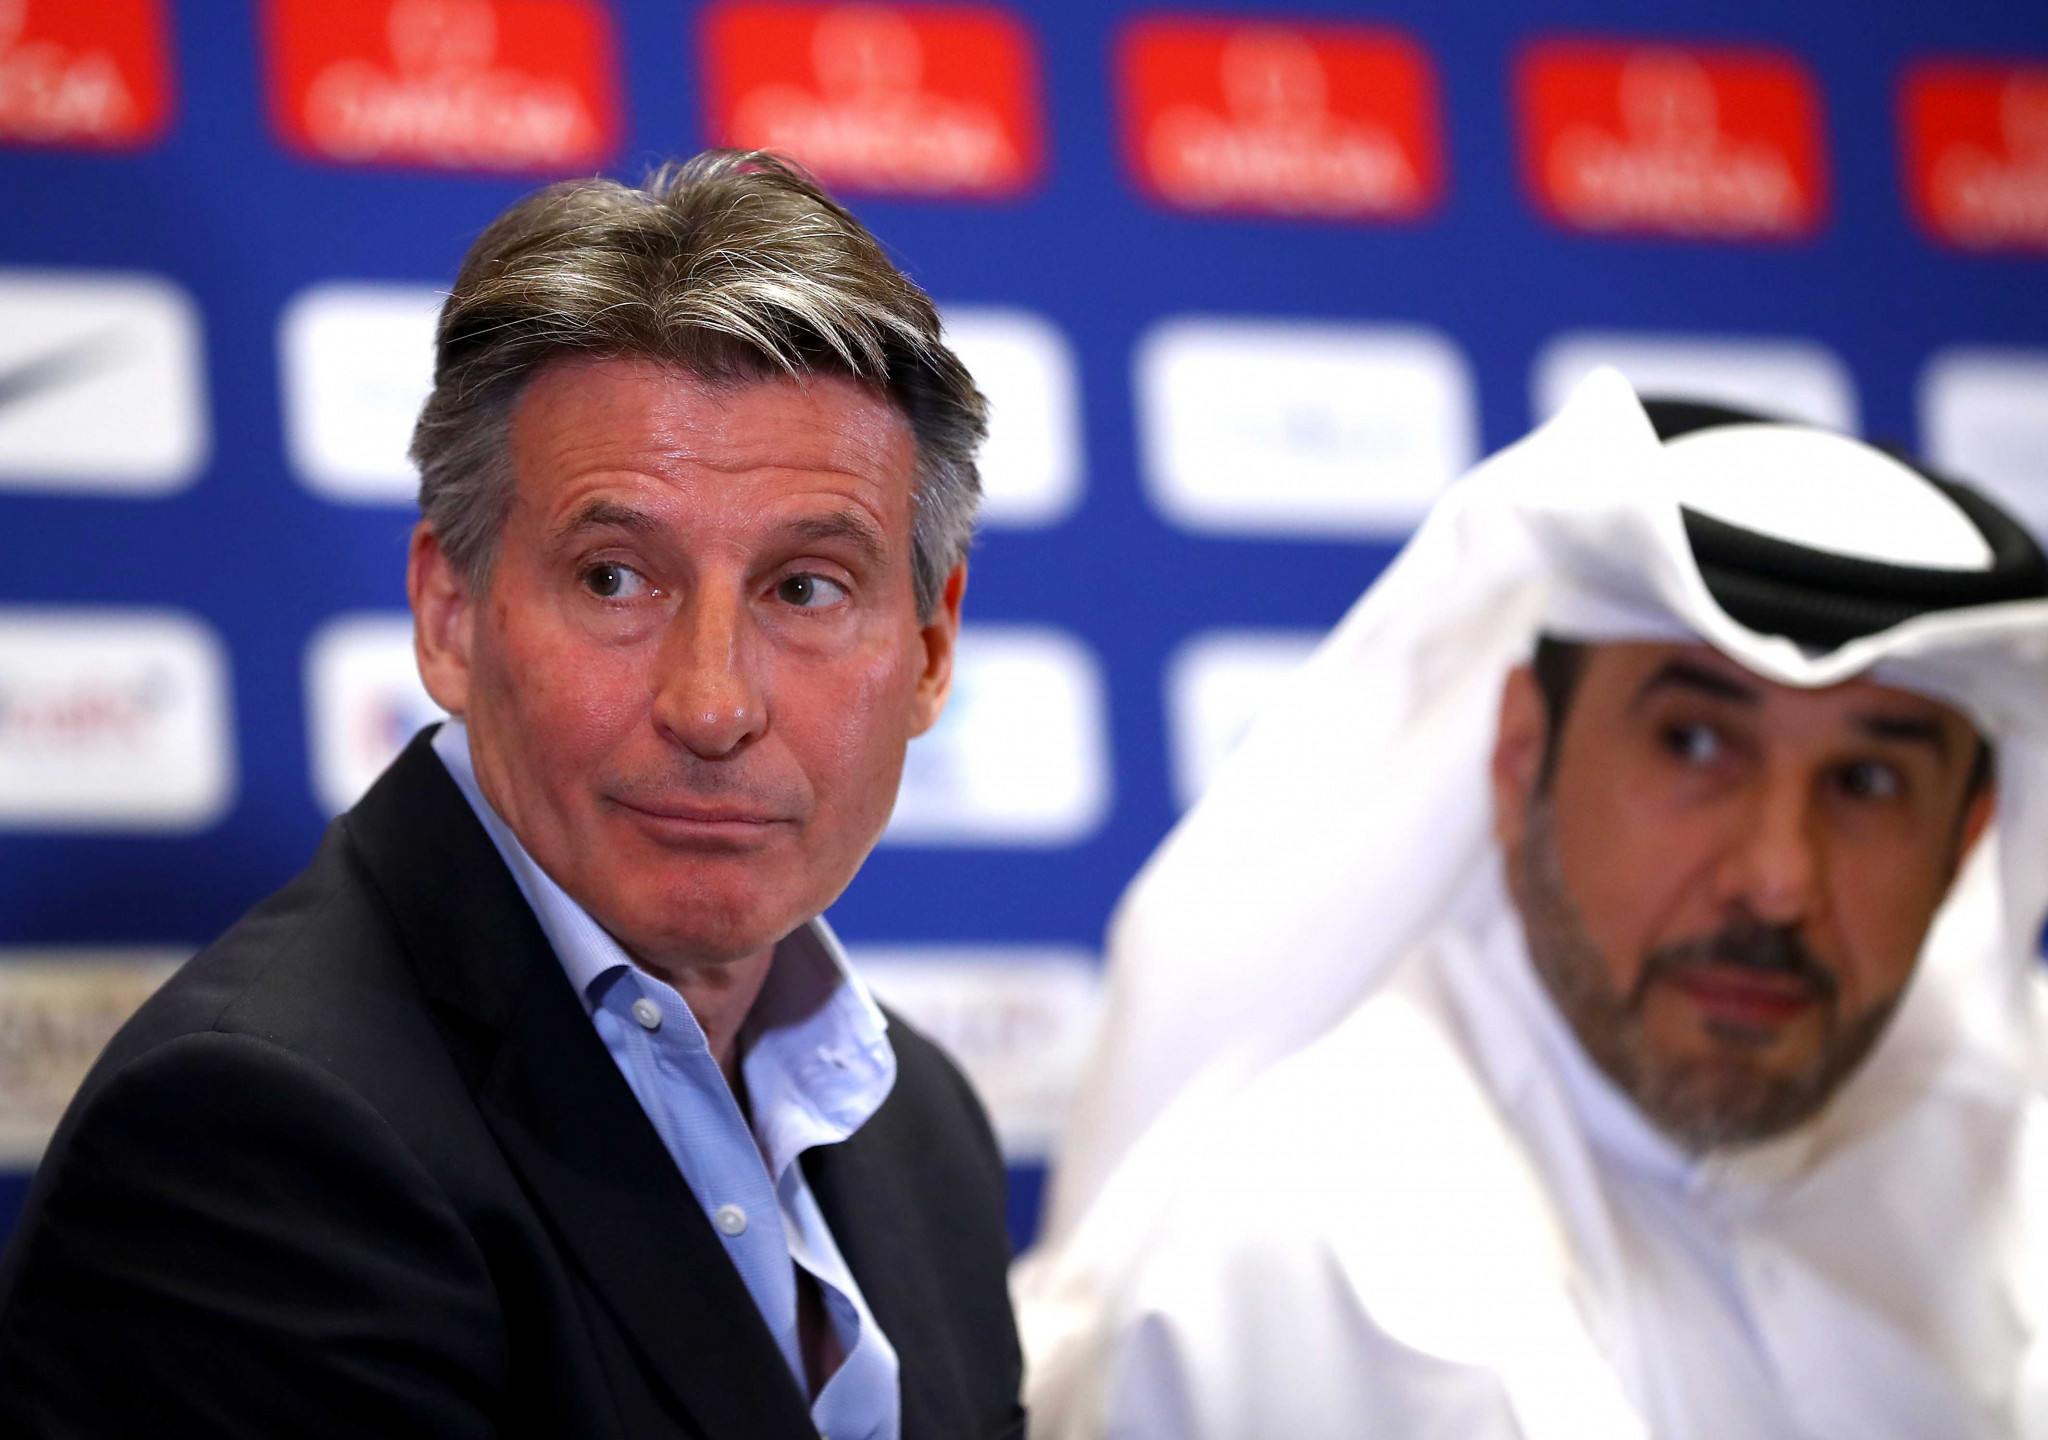 IAAF President Sebastian Coe has reached an agreement with the Nigerian Sports Minister Solomon Dalung over $134,000 that was paid to the Athletics Federation of Nigeria in error ©Getty Images